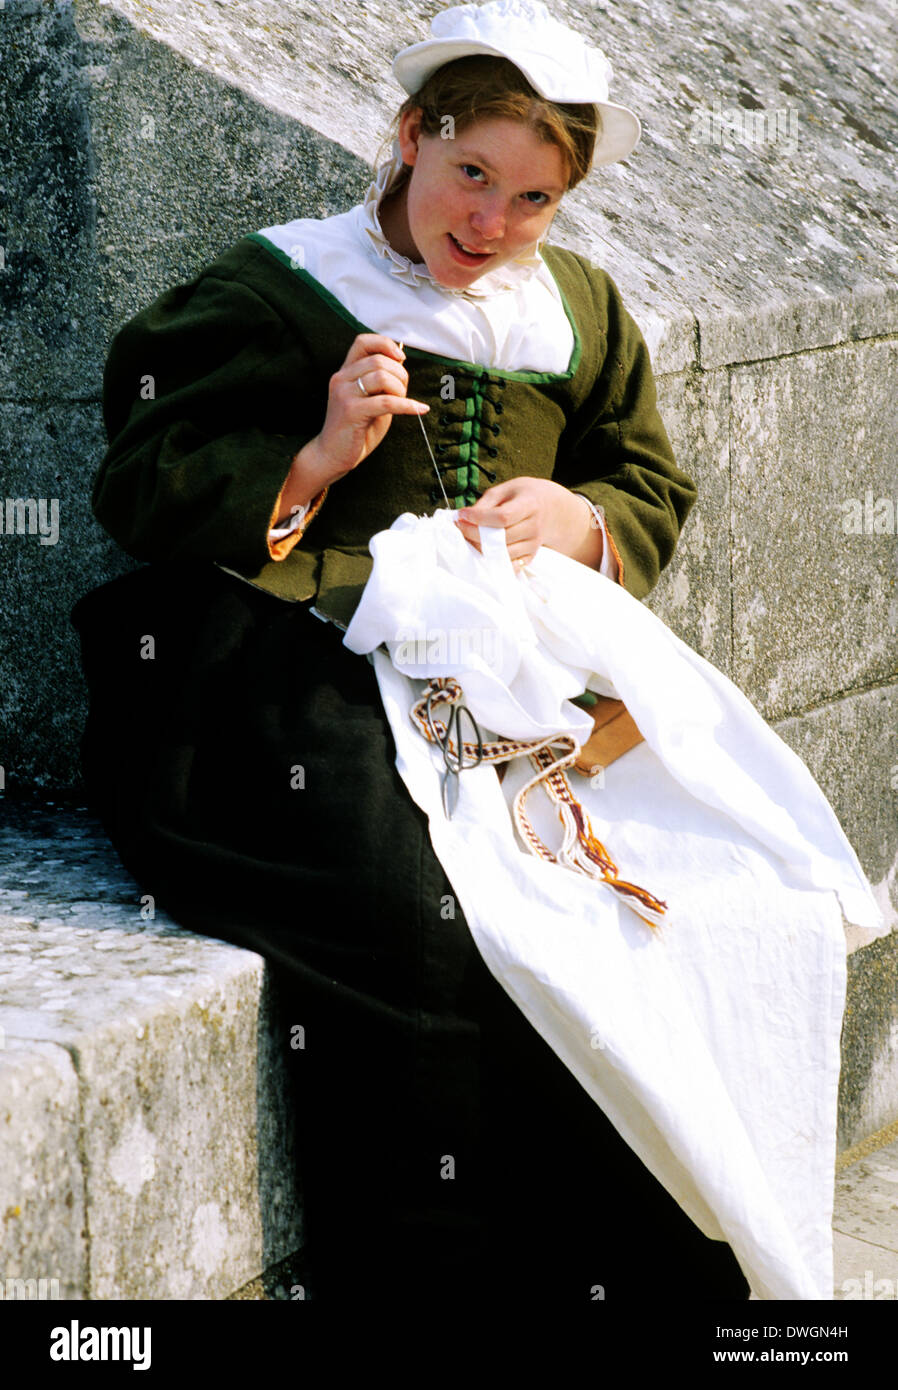 English Tudor Period, young woman sewing, 16th century, historical re-enactment, costume fashion fashions England UK - Stock Image